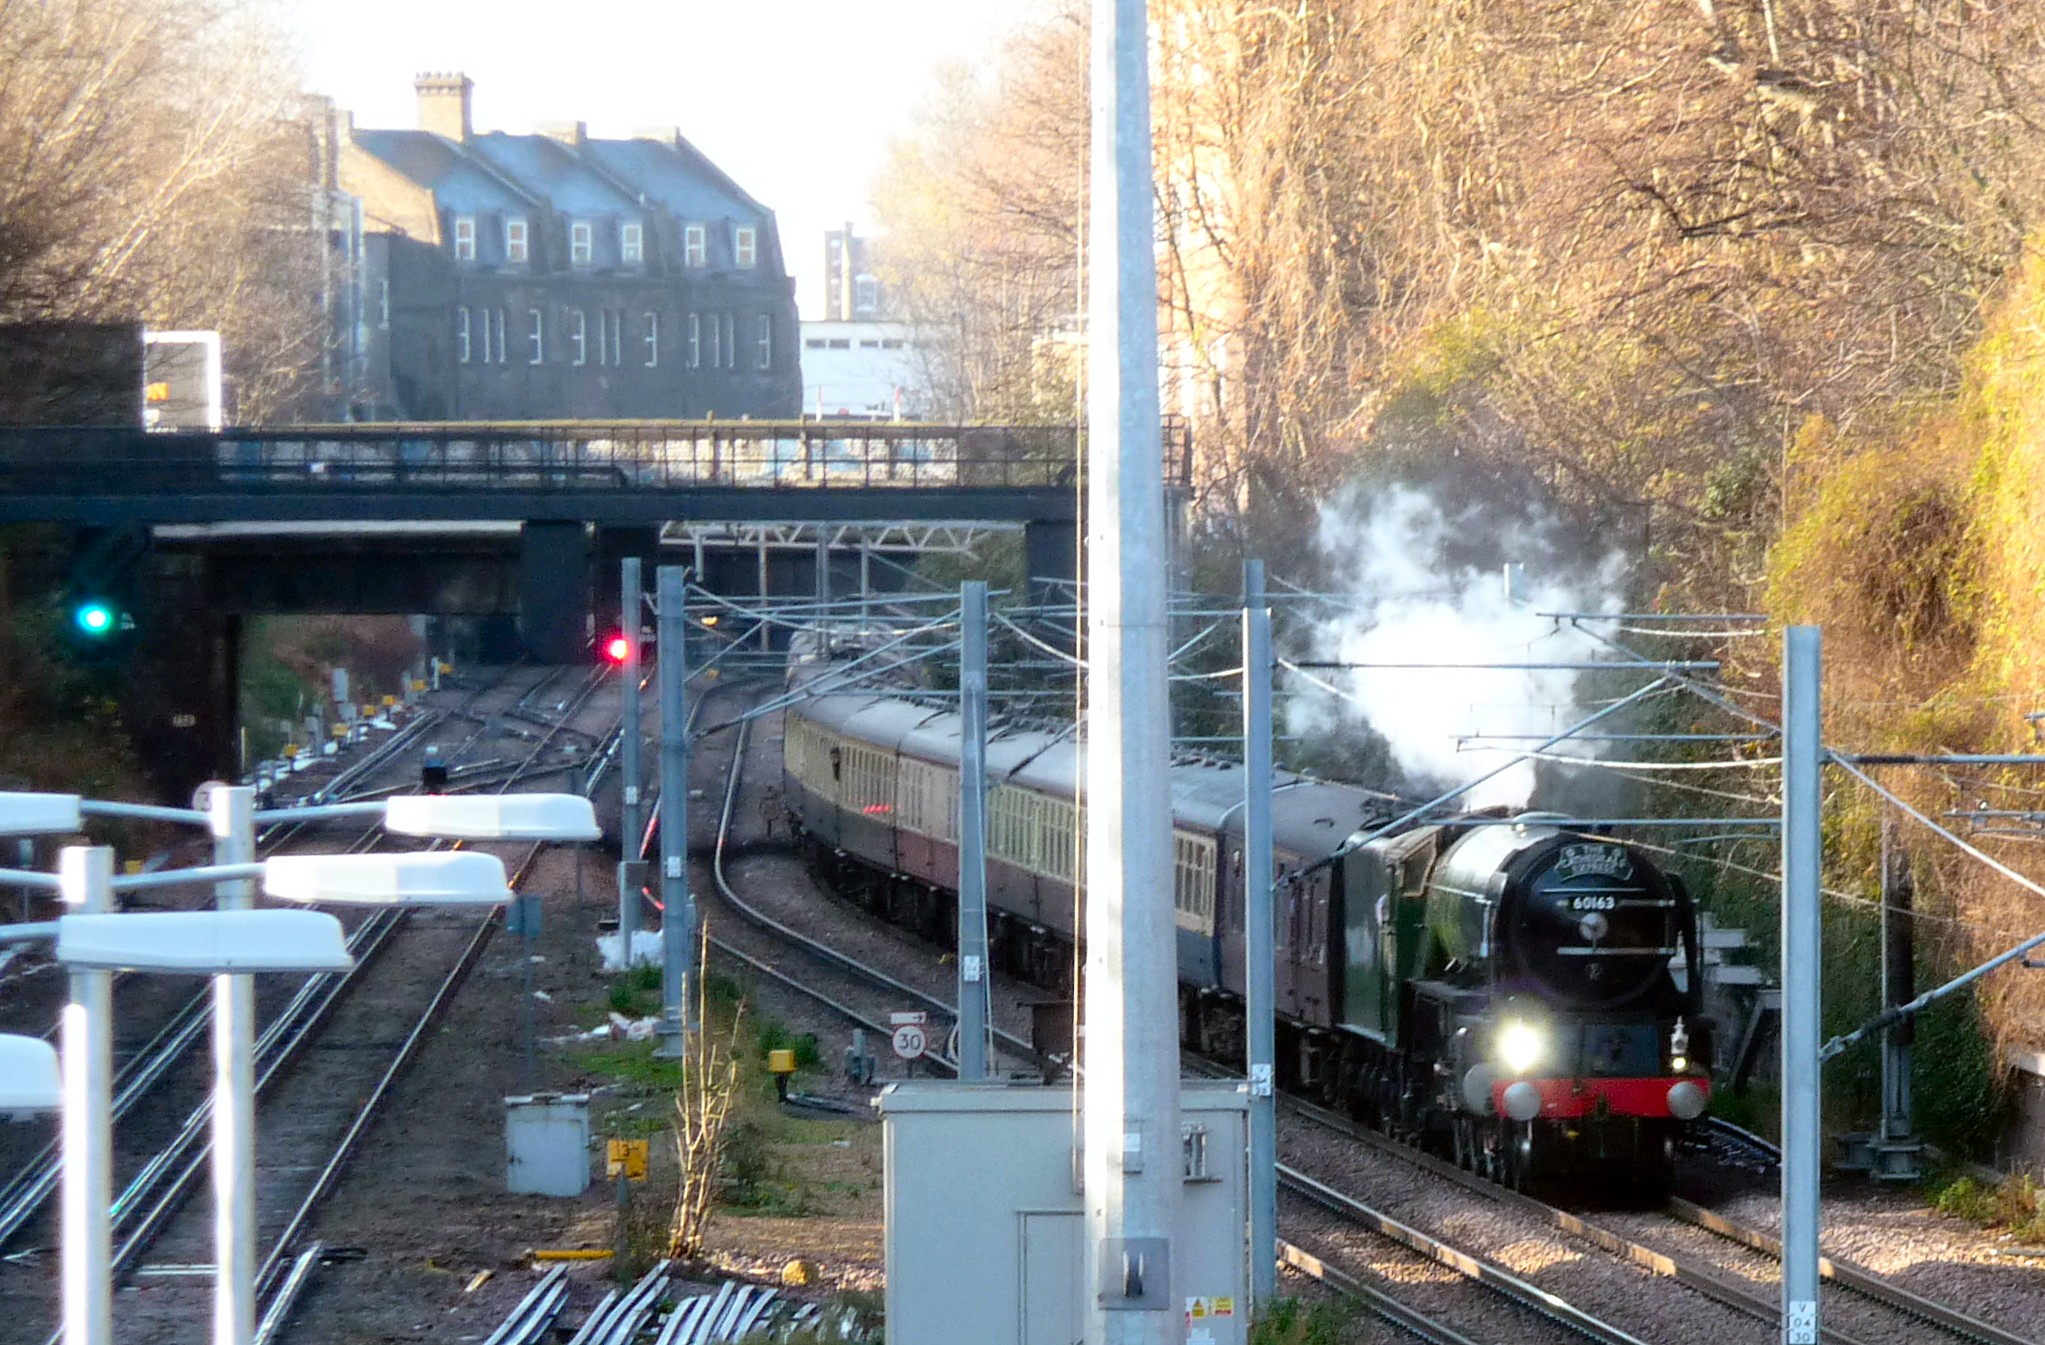 60163 Tornado eastbound approaching Canonbury on 12th December 2011 © Robert Carr